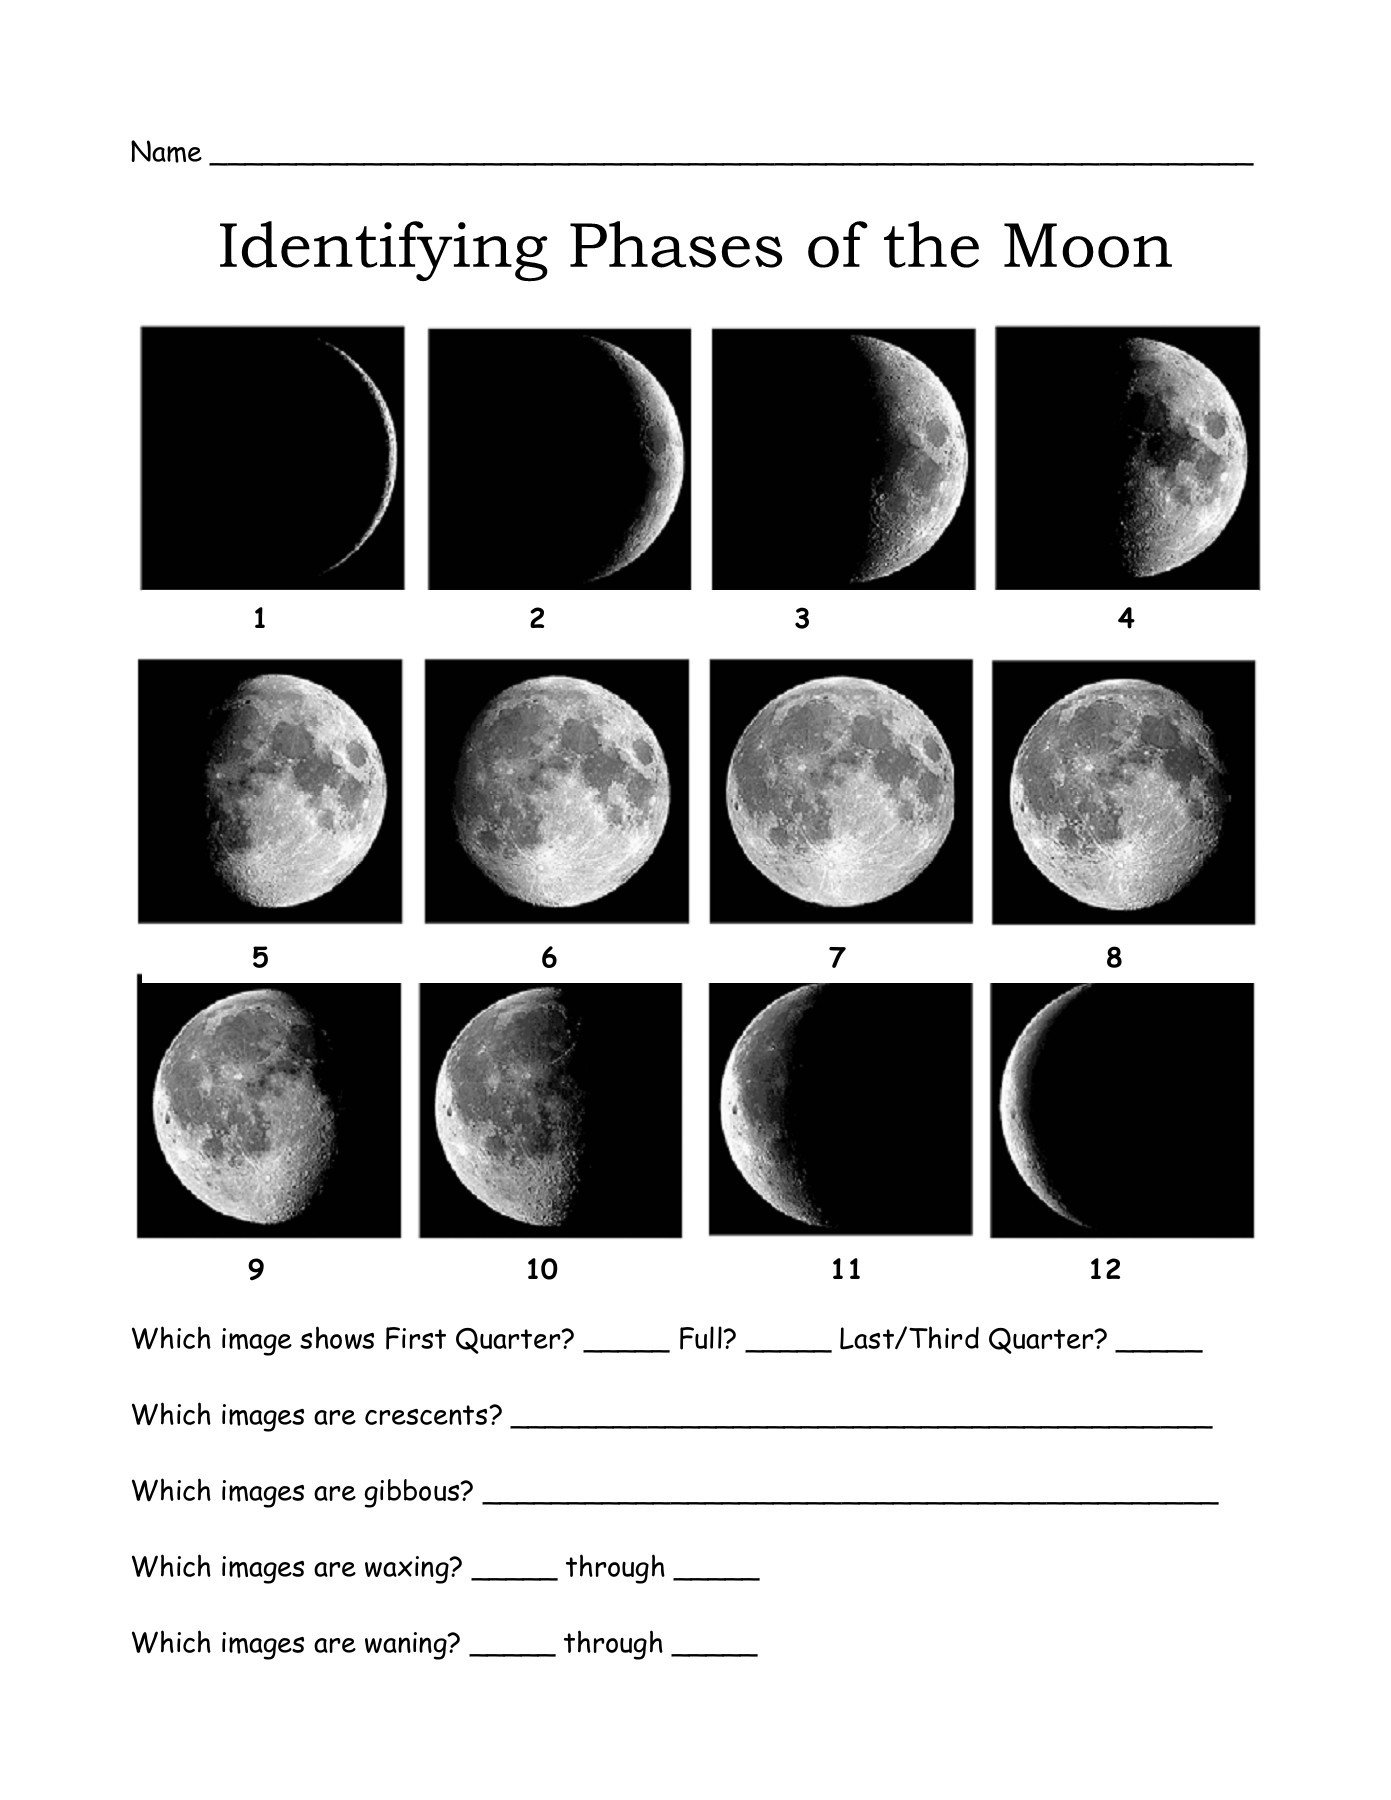 Phases Of the Moon Worksheet Name Identifying Phases Of the Moon Mrscienceut Pages